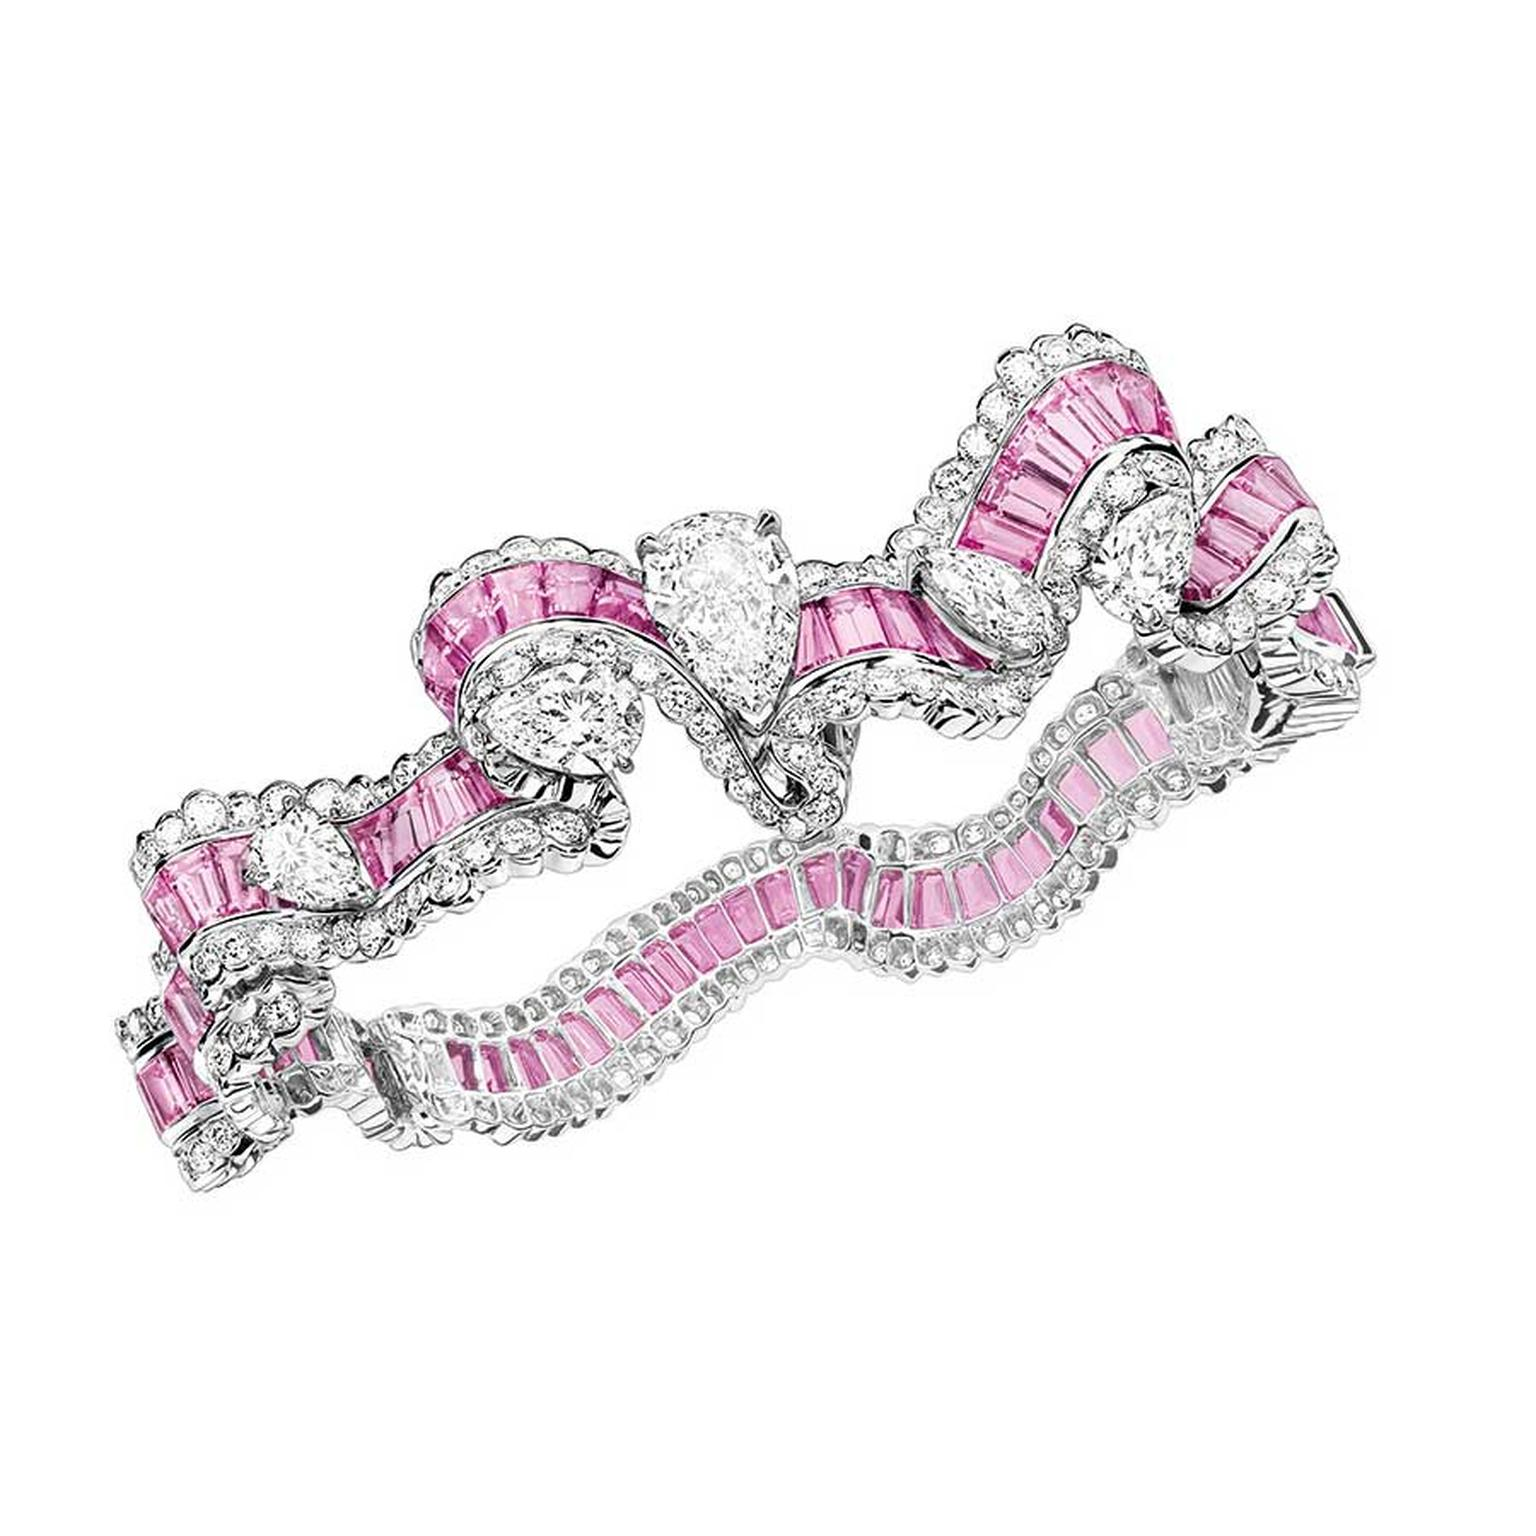 Dior Grain Saphir rose bracelet with pink sapphires